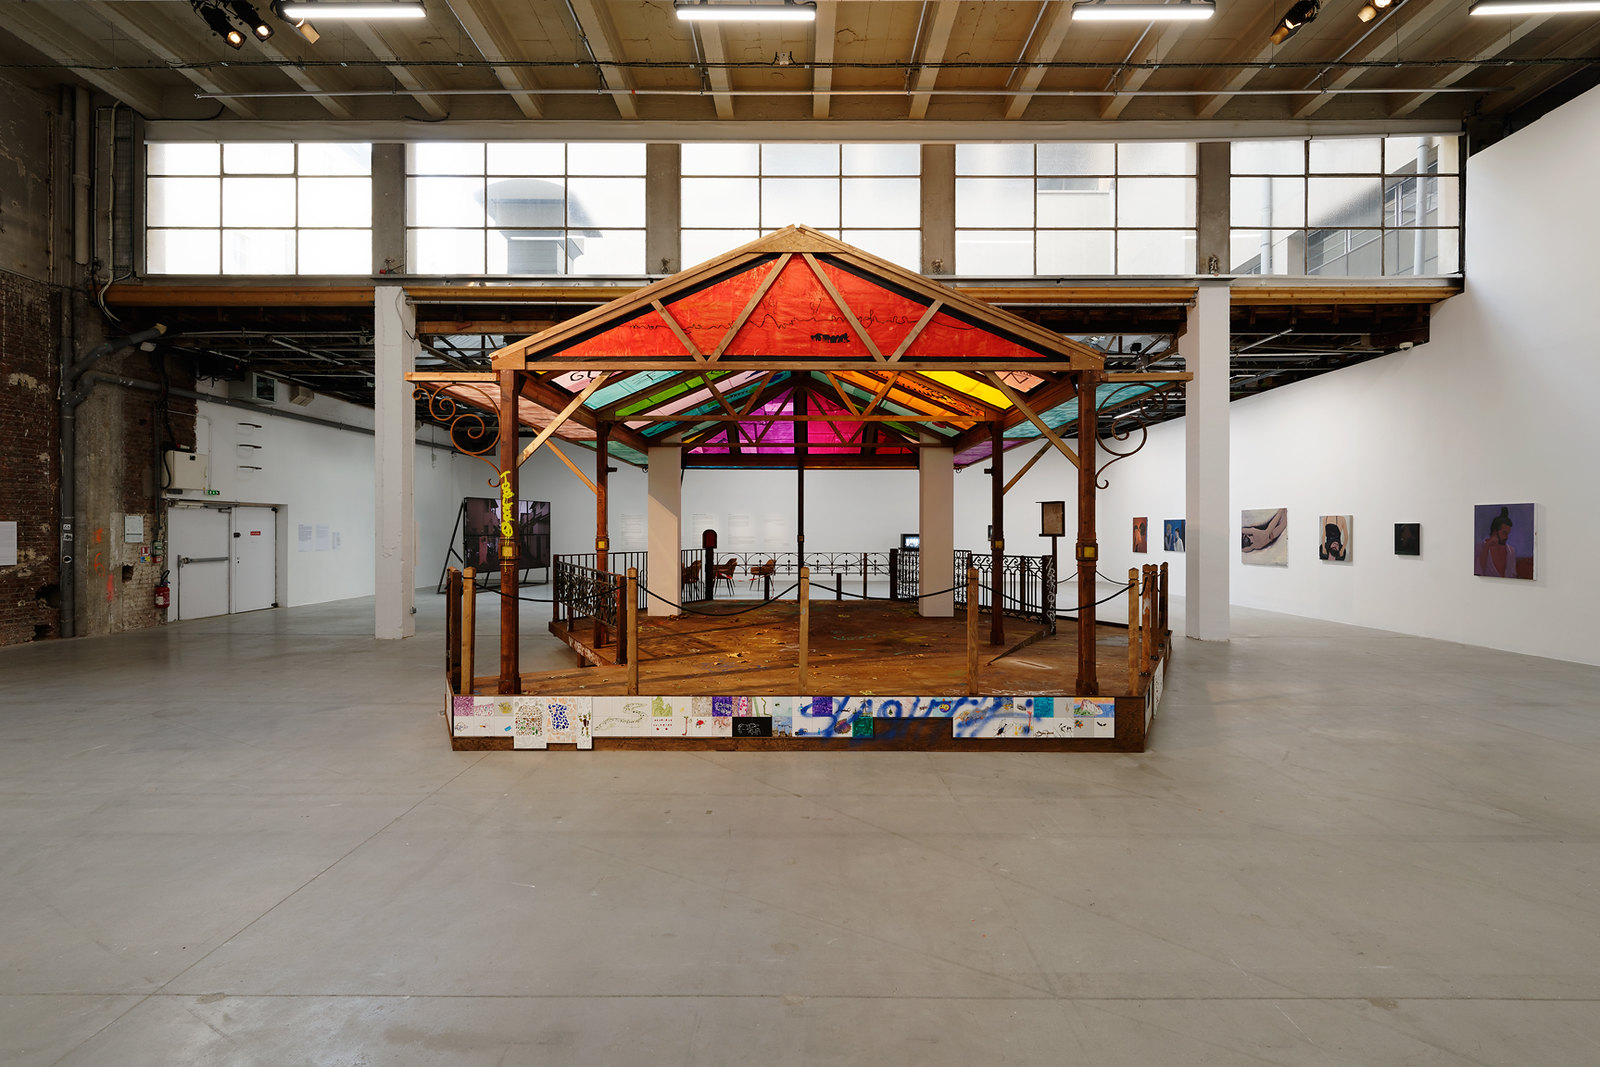 a wooden kiosk or bandstand in a larger room. The kiosk is hexagon shaped and has colourful roof panels. There is decorative wrought iron around the half the perimeter of the kiosk and hip-height poles with rope strung between them around the other half of the perimeter